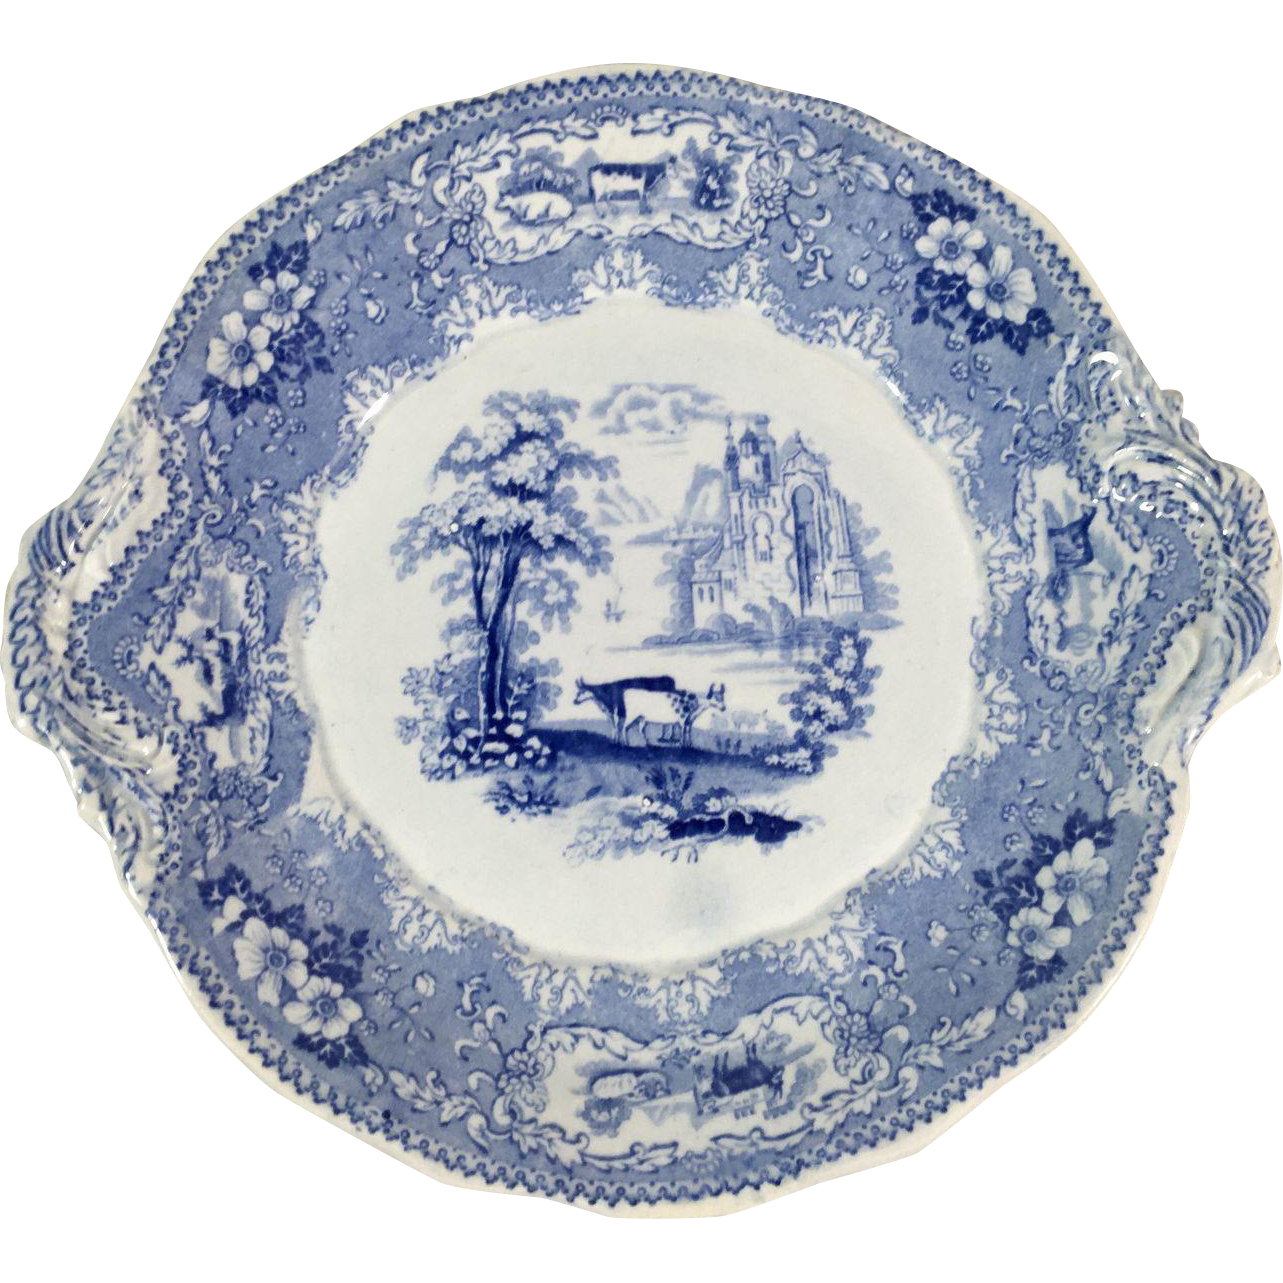 English Blue and White Transfer Ware Plate, c.1840